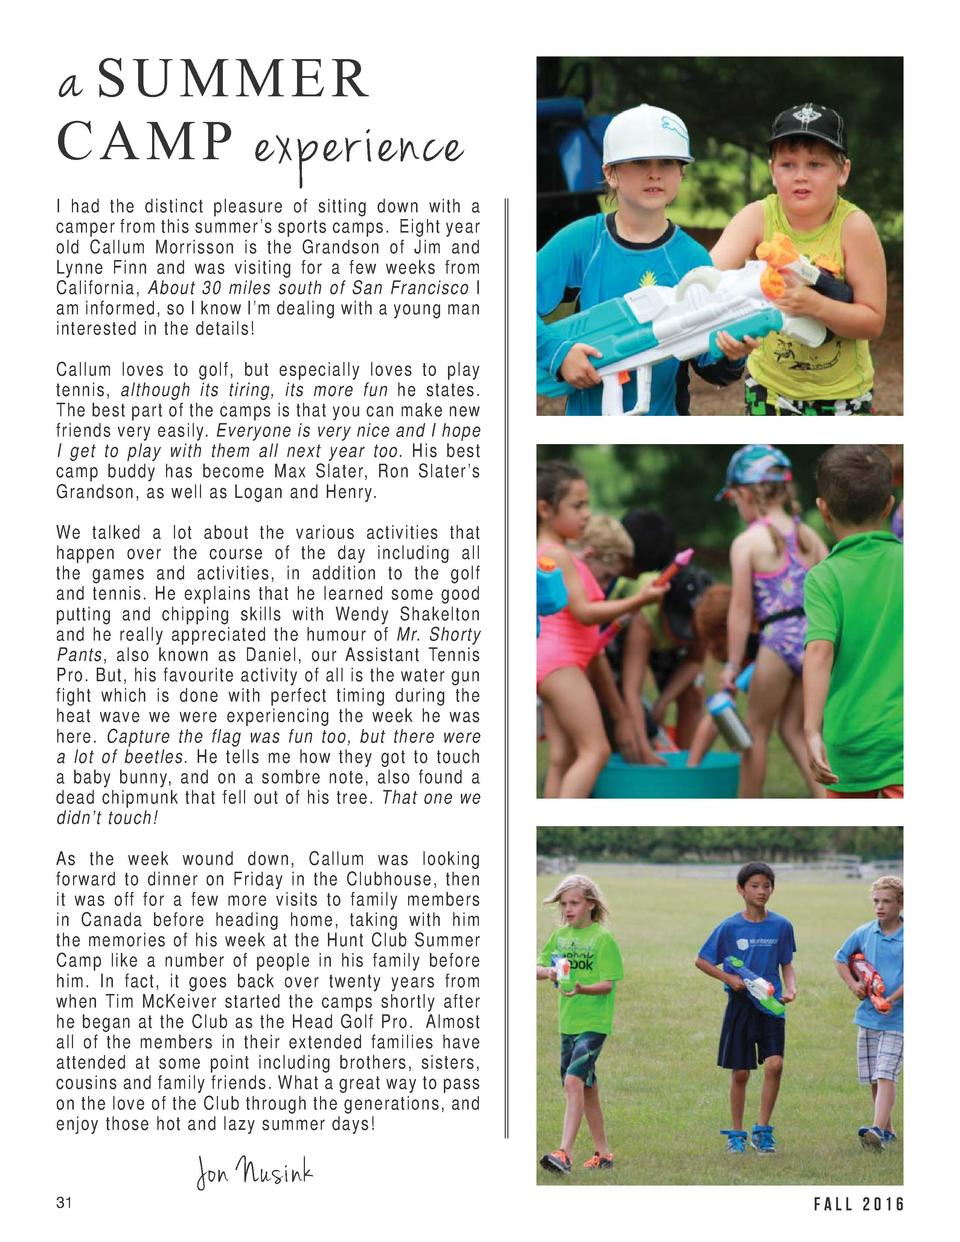 a SU MMER C A MP experience I had the distinct pleasure of sitting down with a camper from this summer    s sports camps. ...